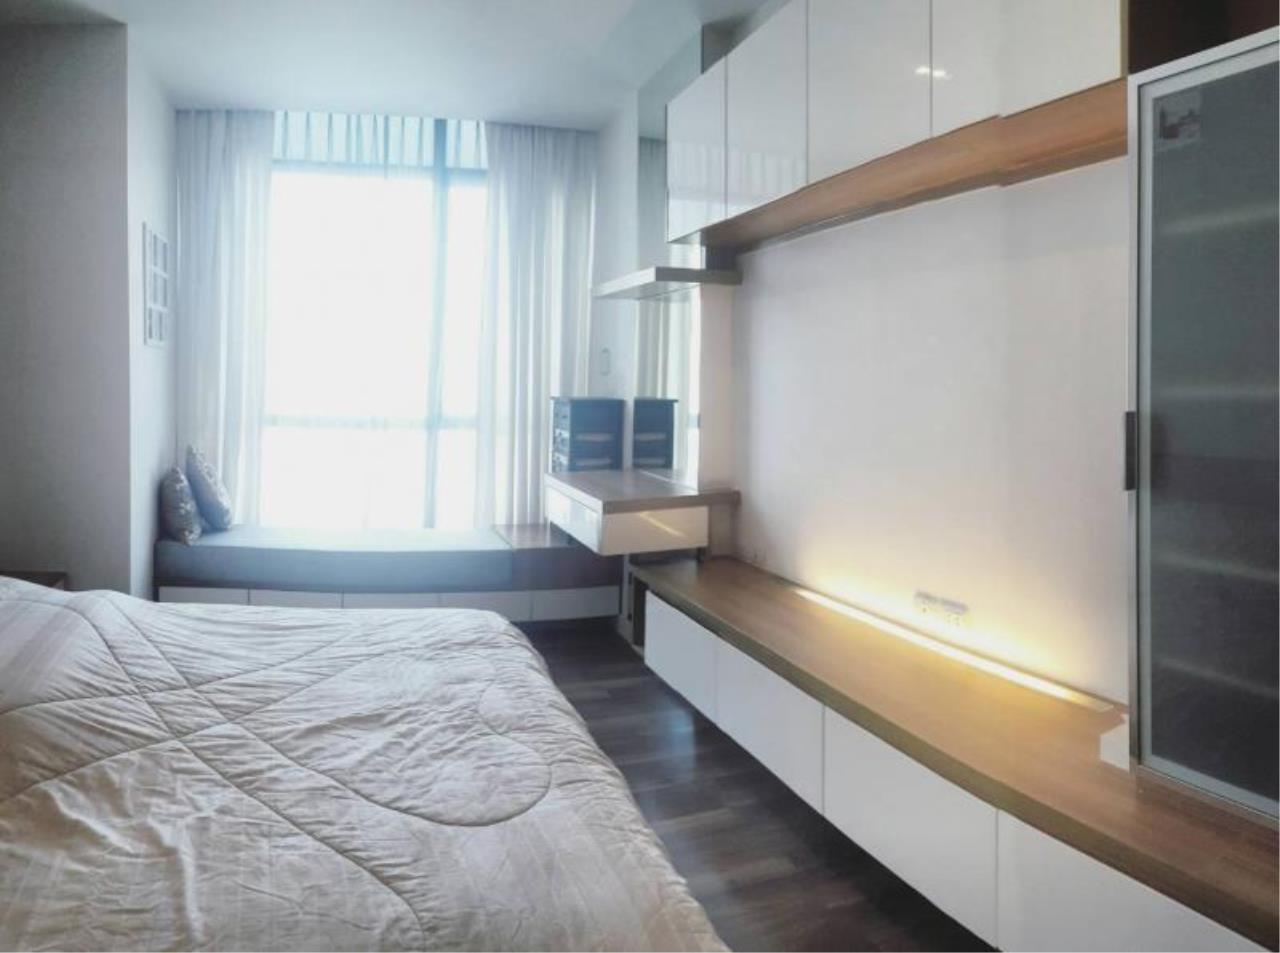 Quality Life Property Agency's *** Sale ****  WITH TENANT ! THE ROOM SUKHUMVIT 62 | 1 BED 1 BATH | 45 SQ. M. 19 FOOR 5